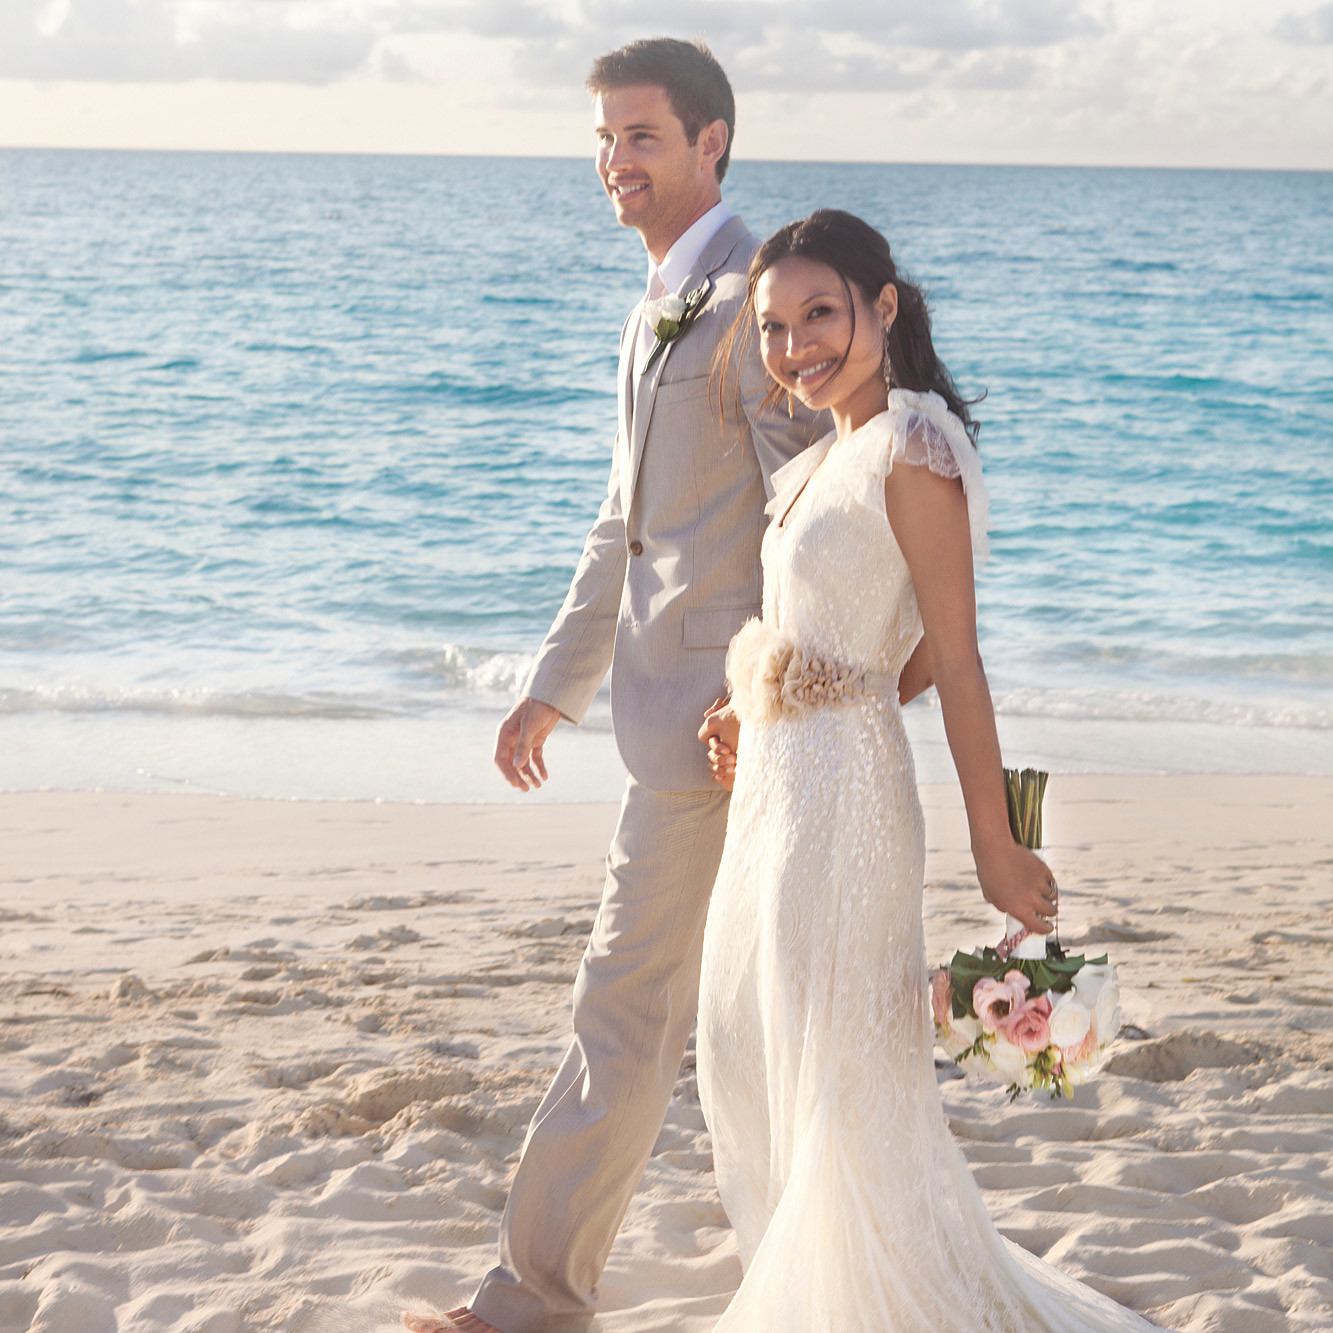 A Romantic Vintage Destination Wedding in Turks and Caicos | Martha ...